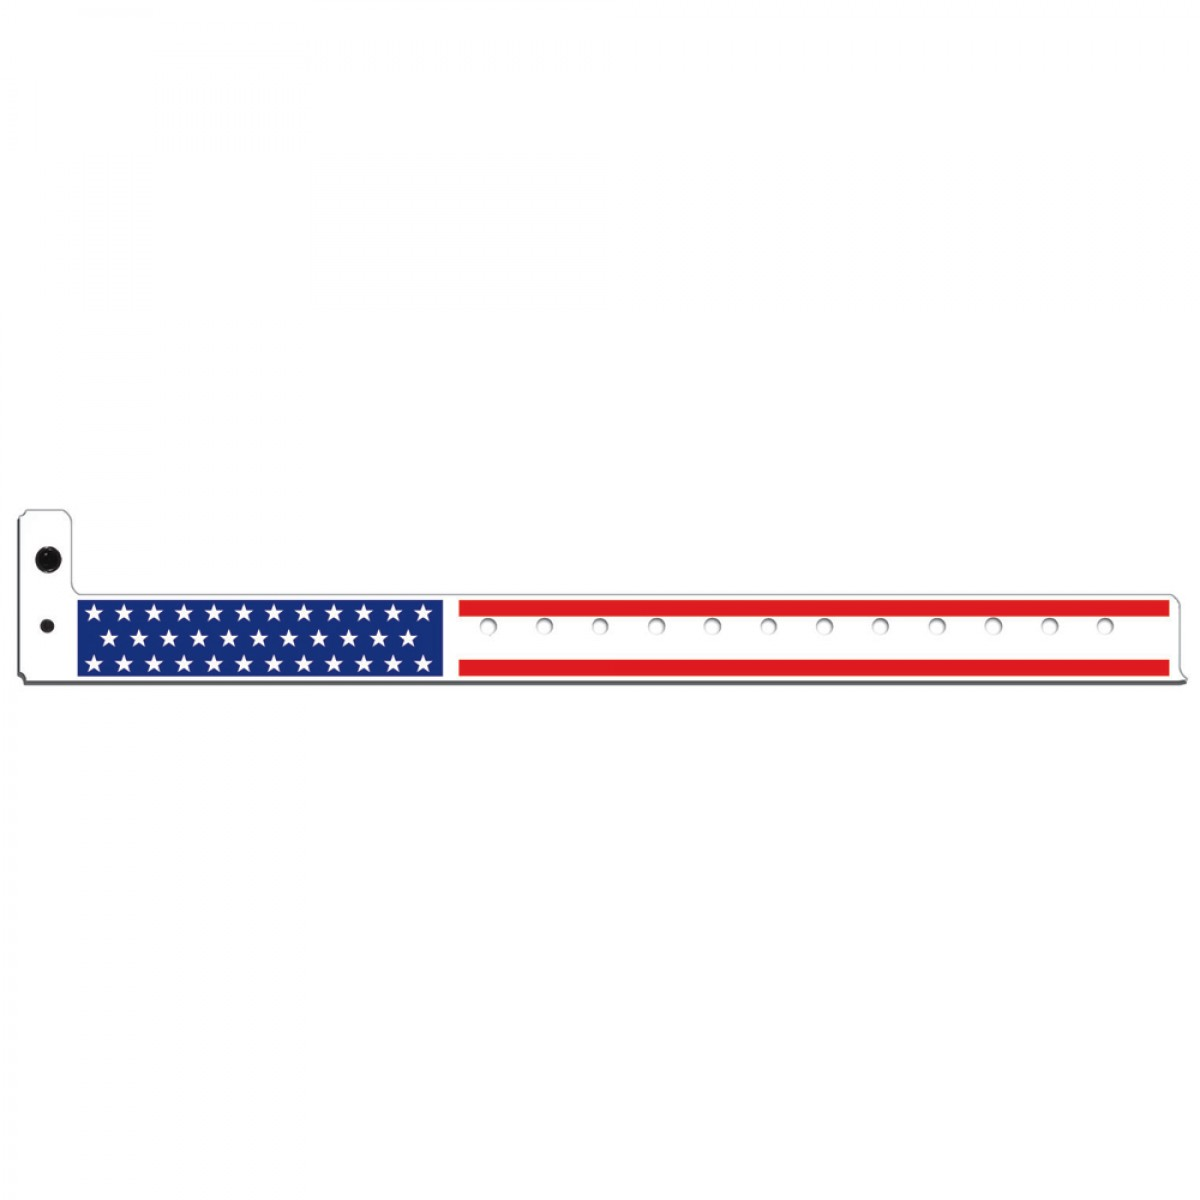 Plastic Stars & Stripes Wristbands